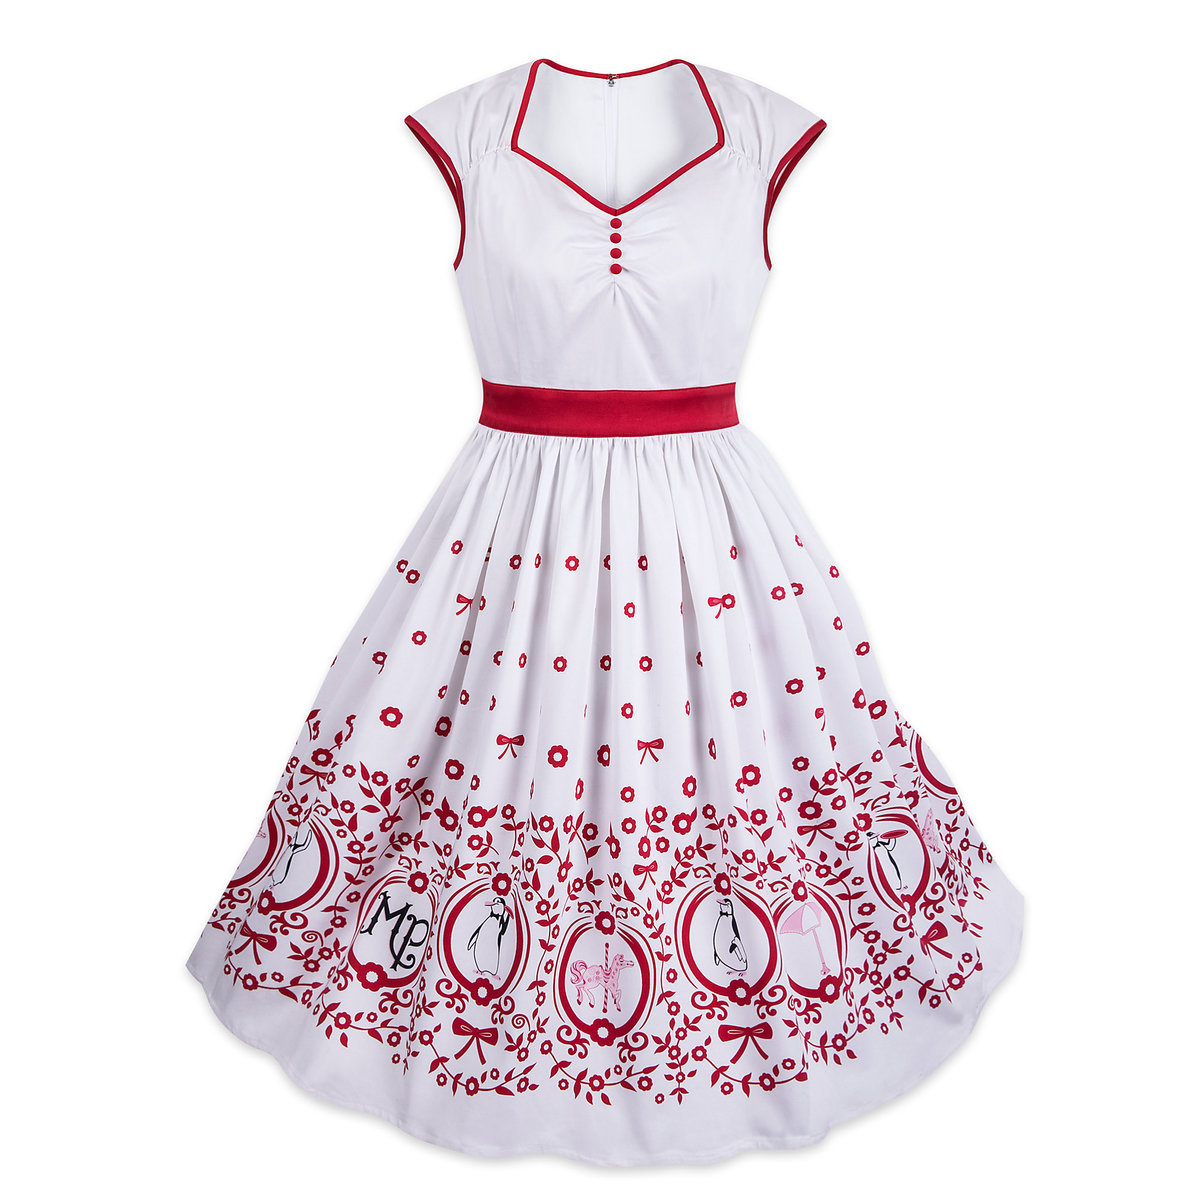 d18497b7d Product Image of Mary Poppins Dress for Women # 1